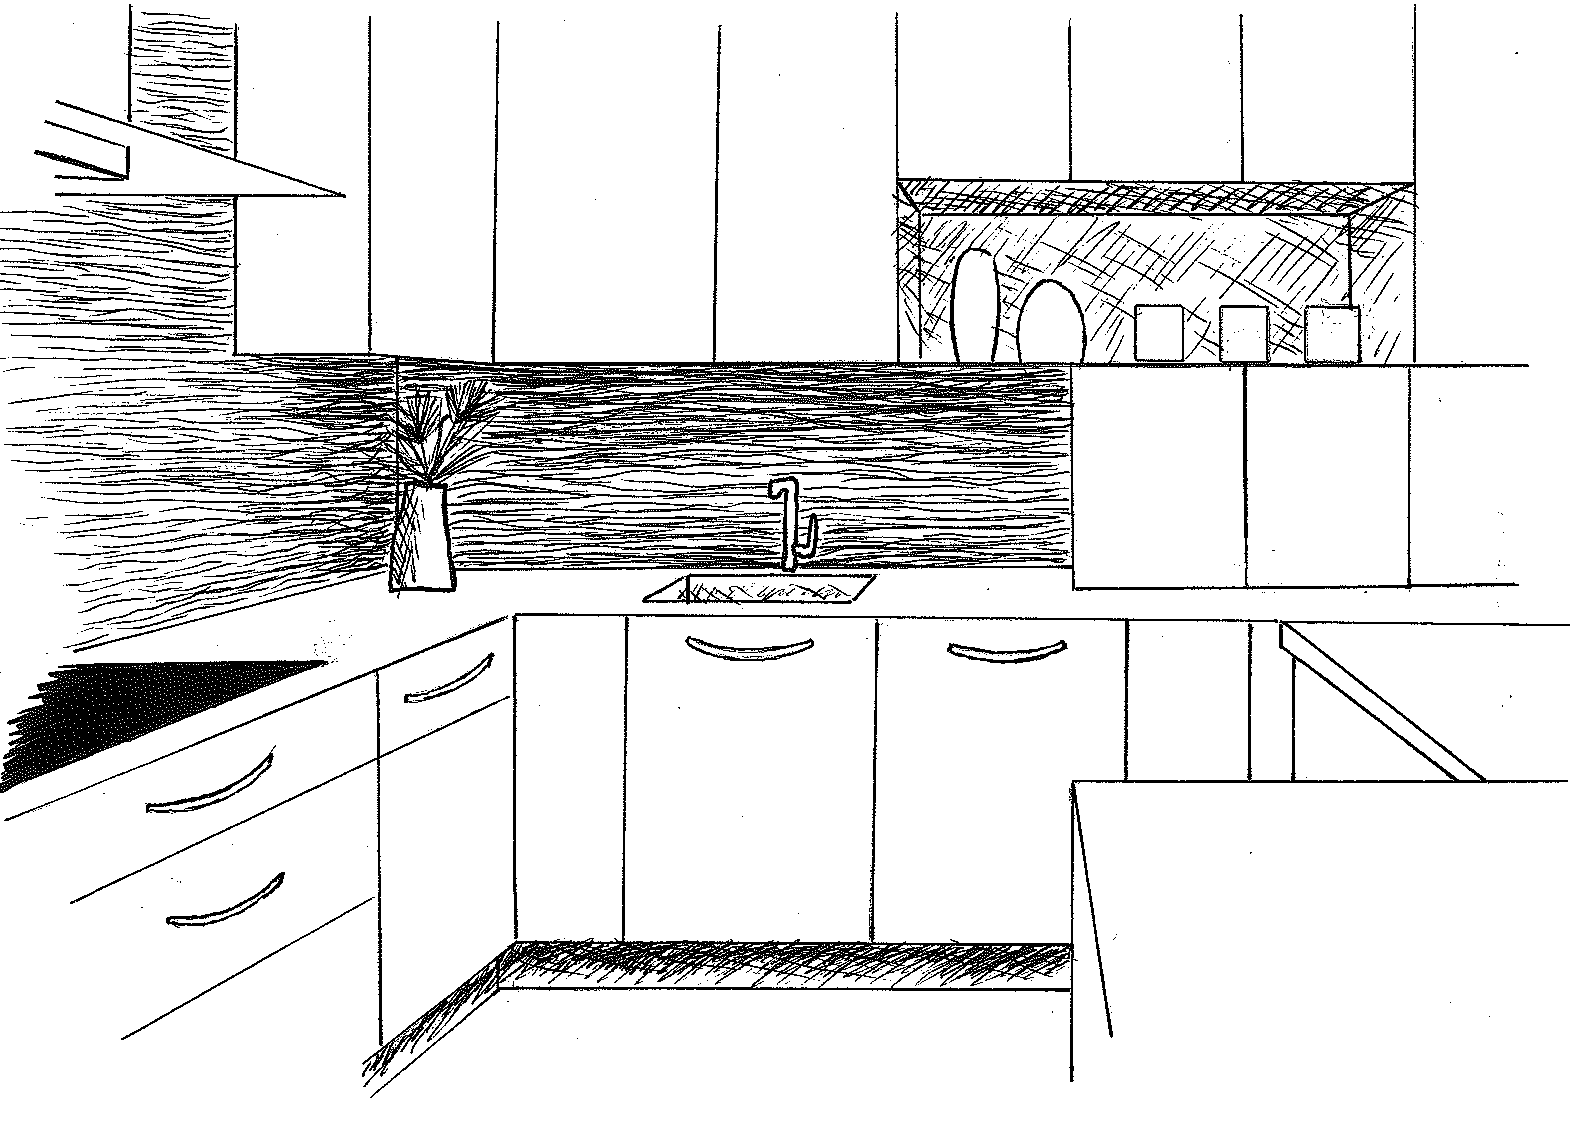 http://www.straightlinekitchens.com/wp-content/uploads/2018/02/Kitchen-Sketch-2-20-18-11.png